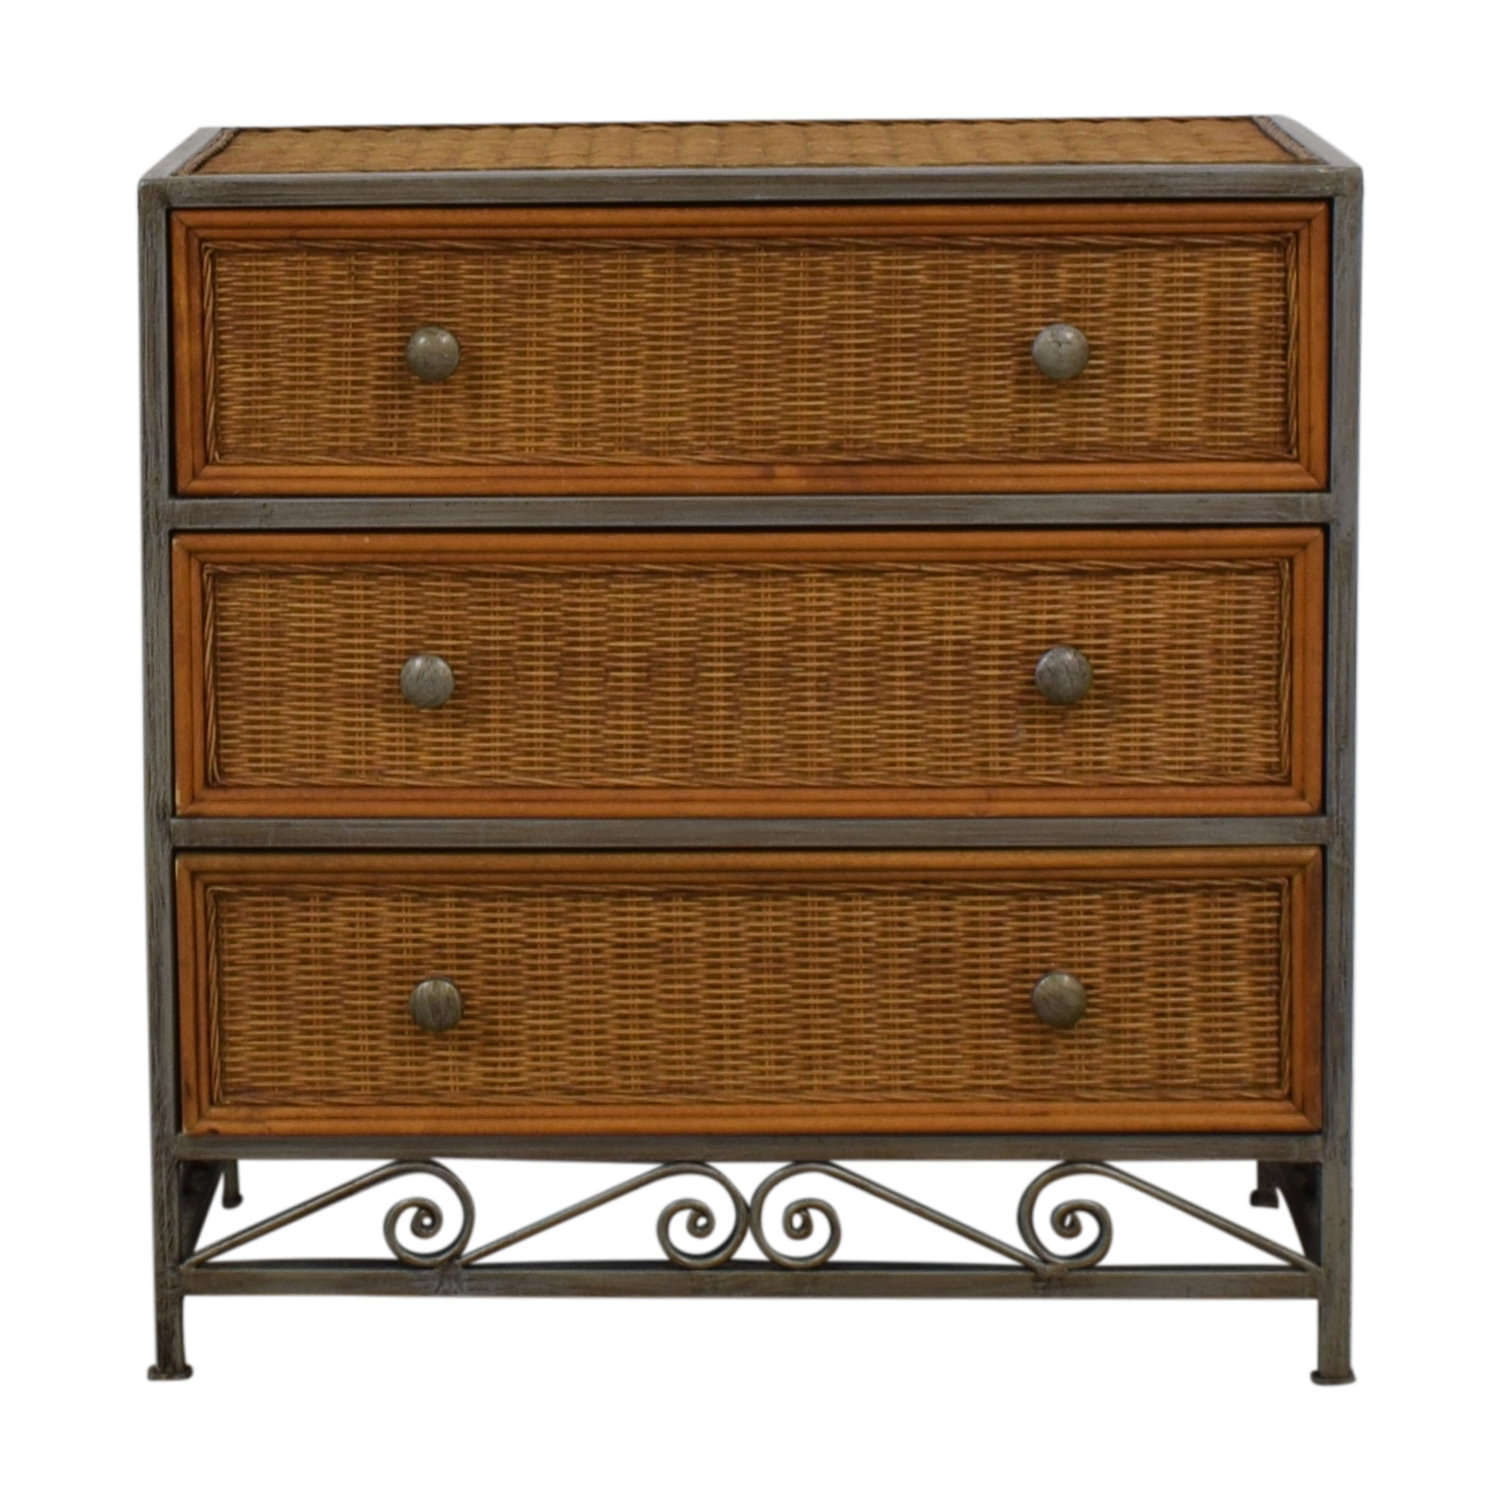 Pier 1 Imports Pier 1 Imports Miranda Three-Drawer Wicker Dresser nj